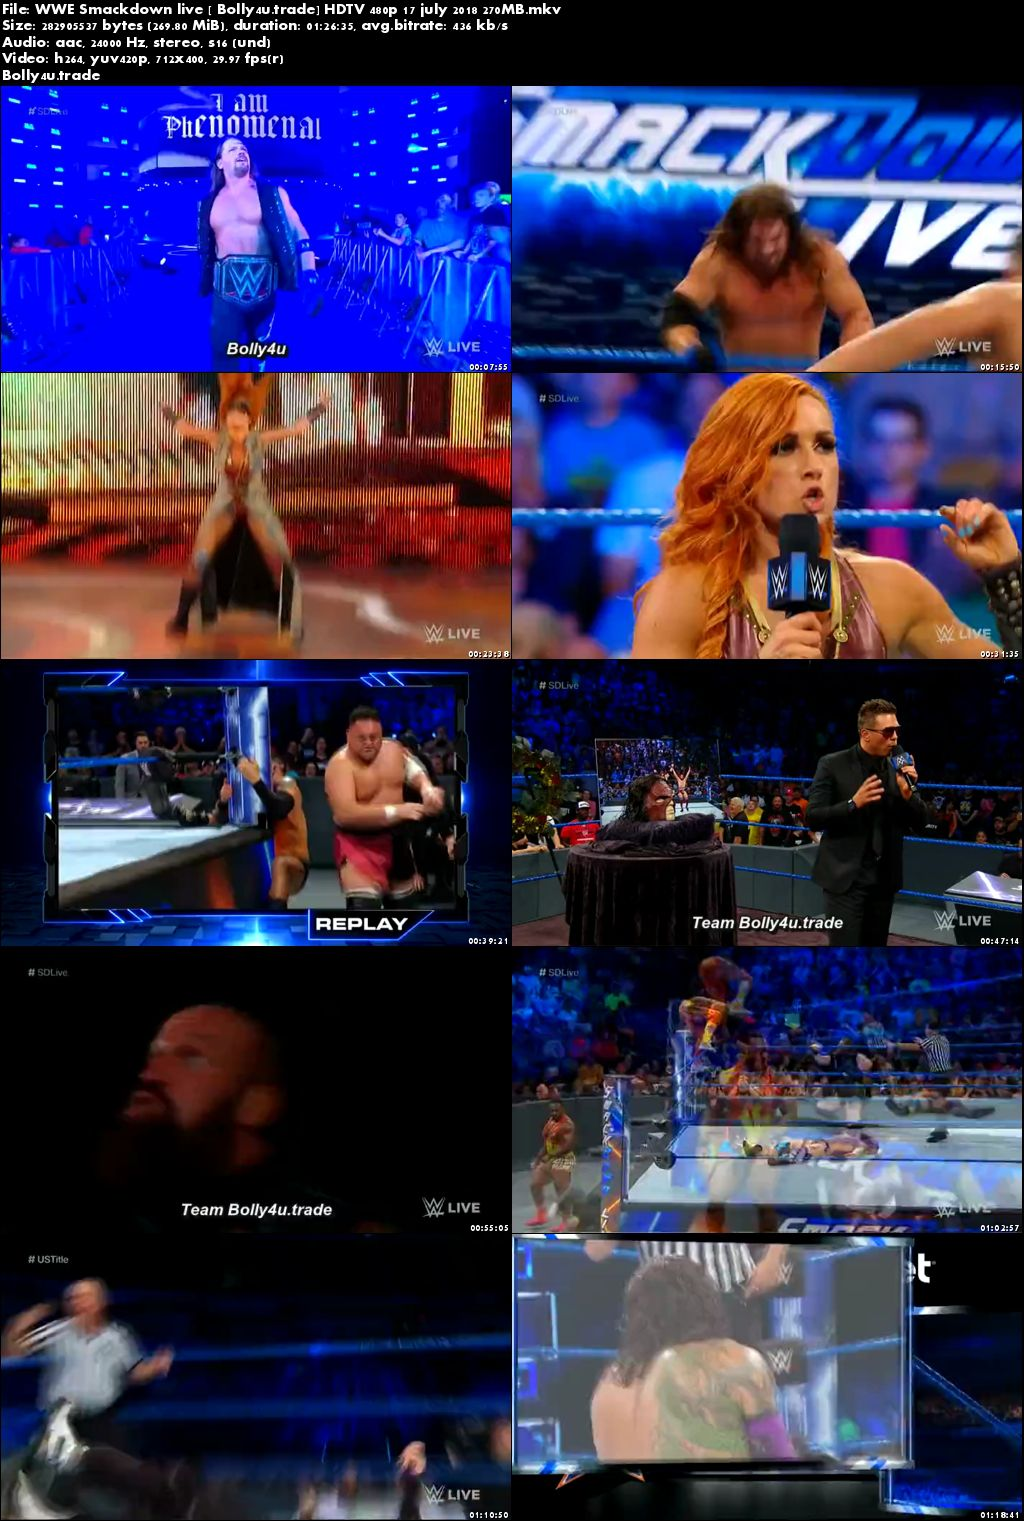 WWE Smackdown Live HDTV 250MB 480p 17 July 2018 Download